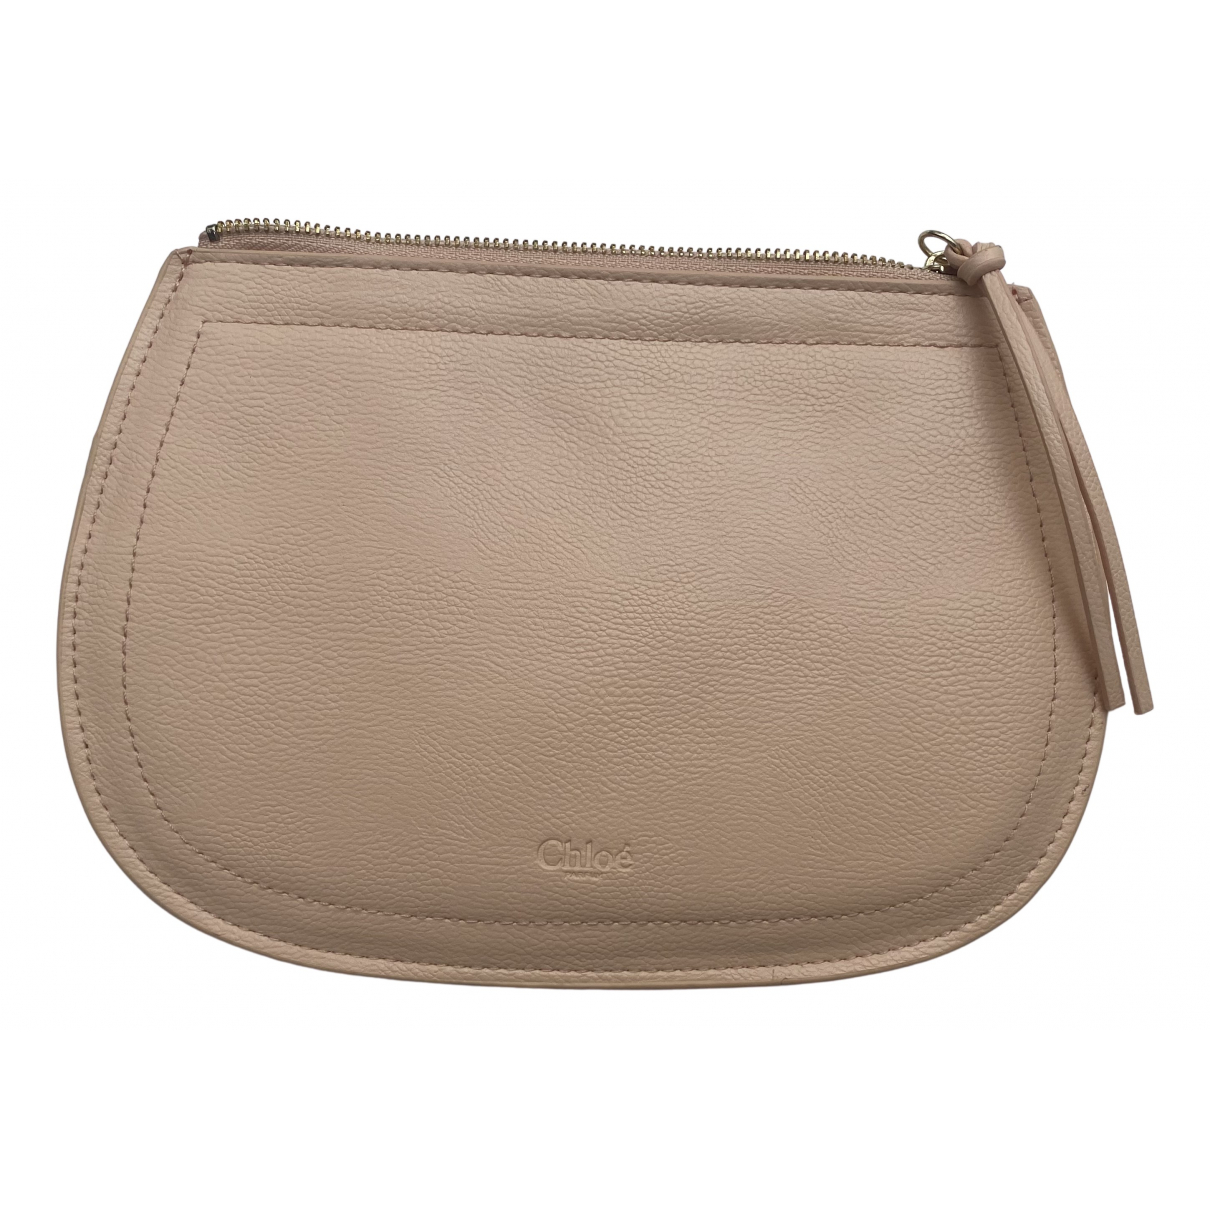 Chloé N Beige Leather Purses, wallet & cases for Women N